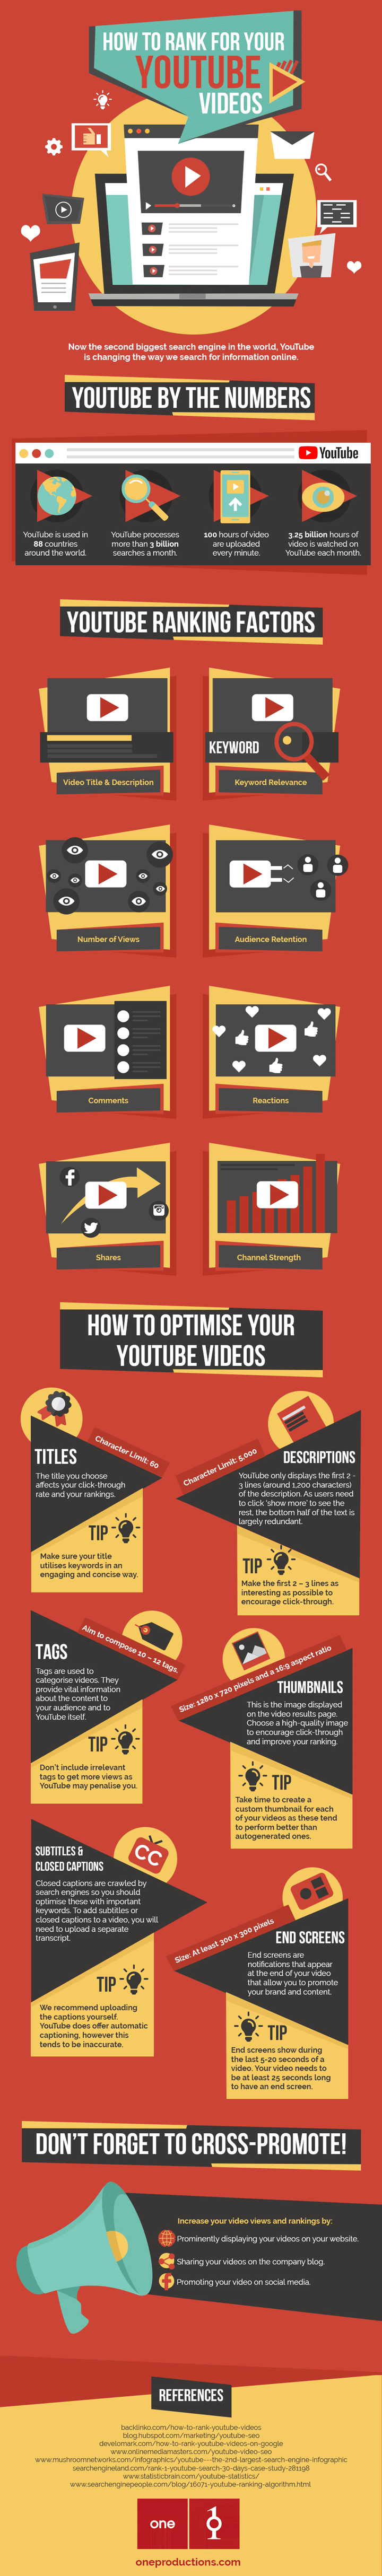 Wondering how to rank YouTube videos? You've spent hours creating, so ensure it's well spent by optimizing your video SEO for success! Great infographic.